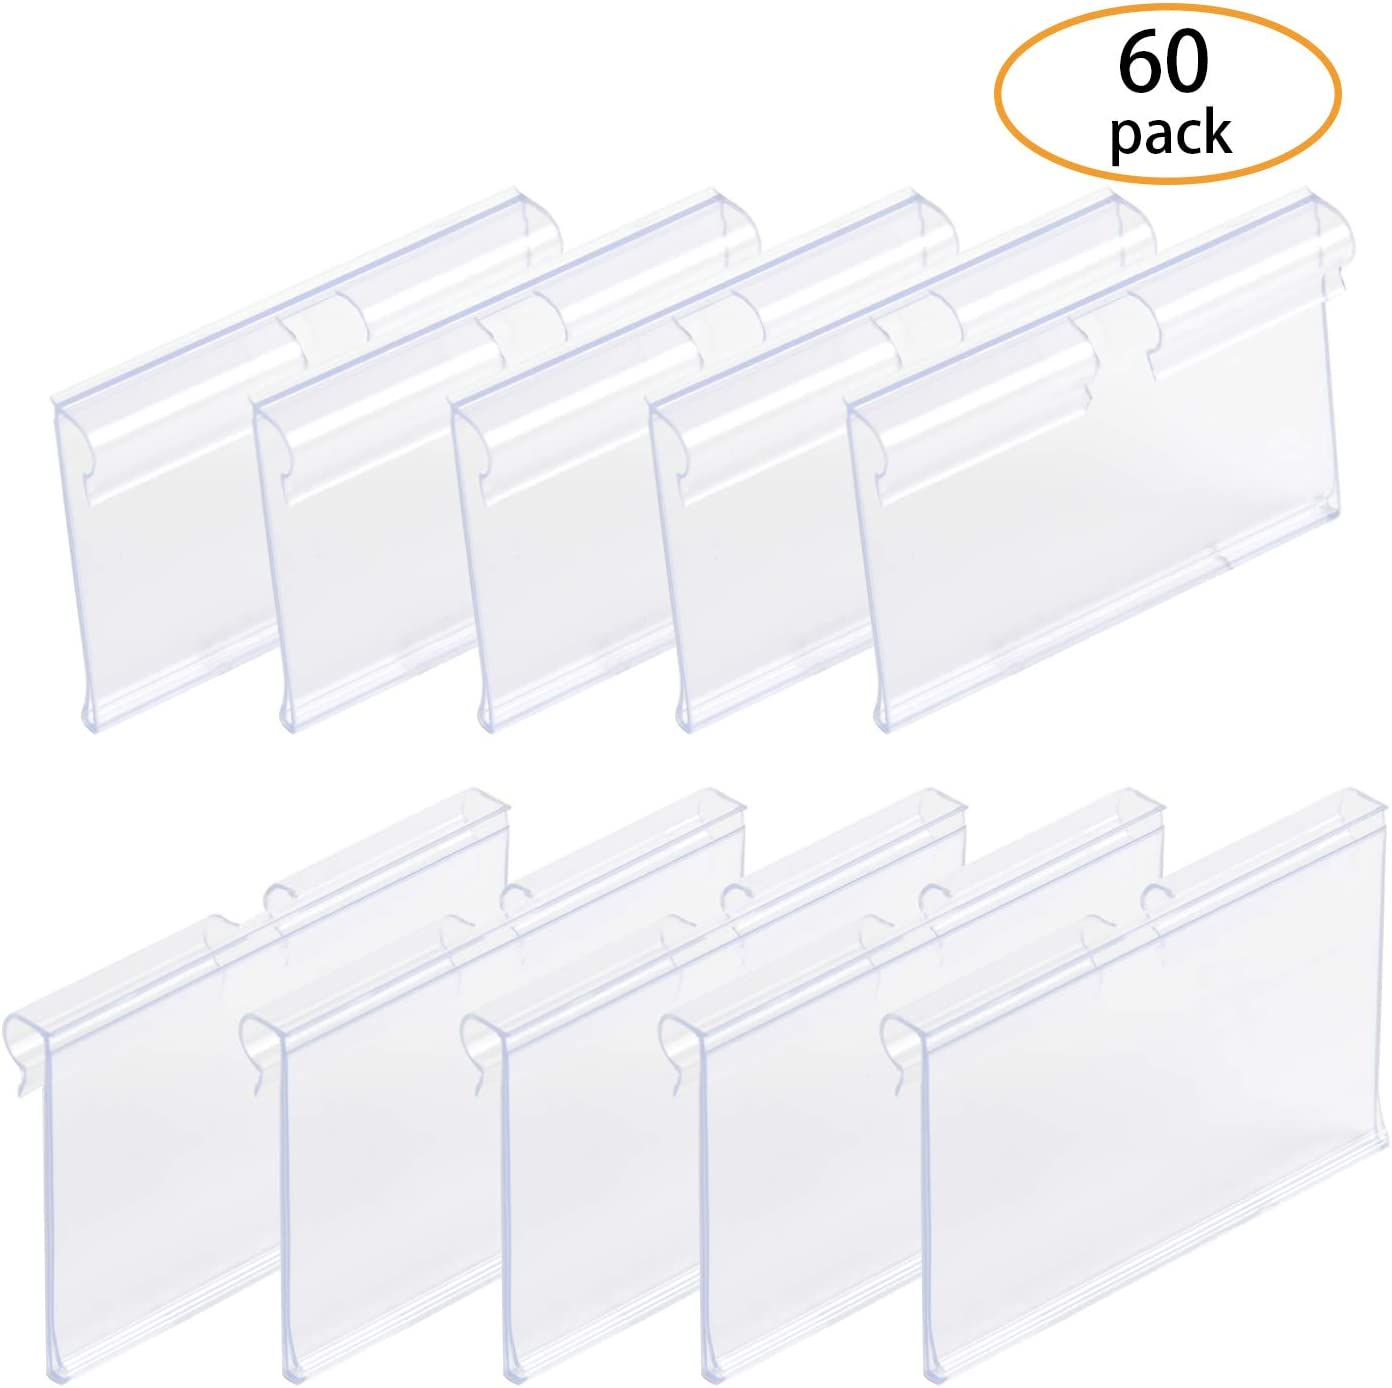 SBYURE 60 PCS Clear Plastic Label Holder for Wire Shelf Retail Price Label Holders Merchandise Sign Display Holder (6cm x 4cm)